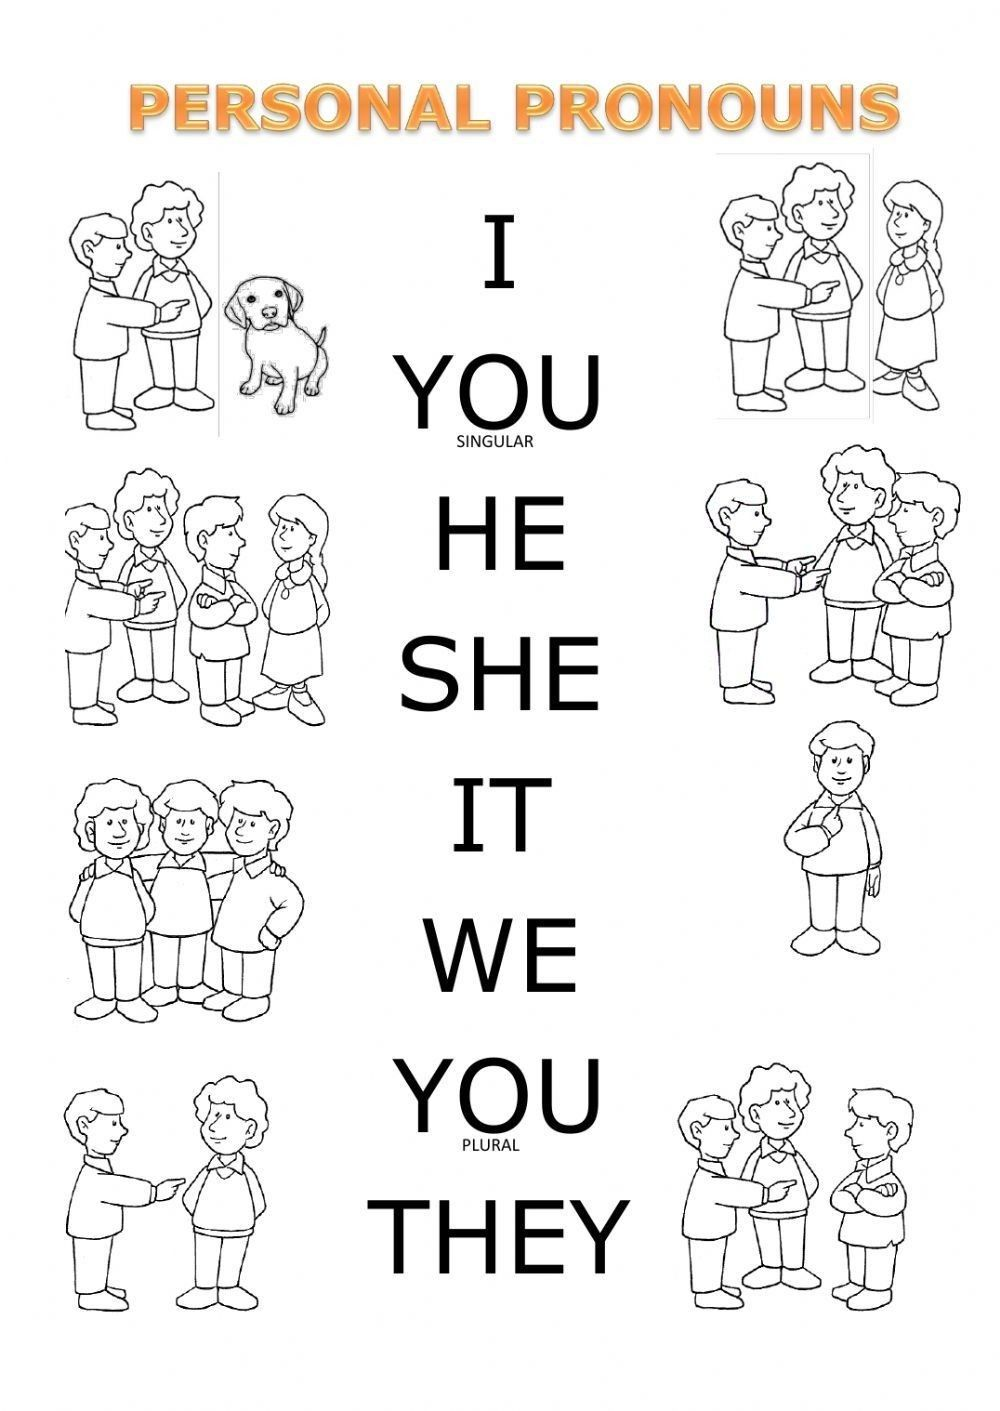 Pin By Daaria On Sheets Personal Pronouns English Worksheets For Kids Personal Pronouns Worksheets [ 1411 x 1000 Pixel ]